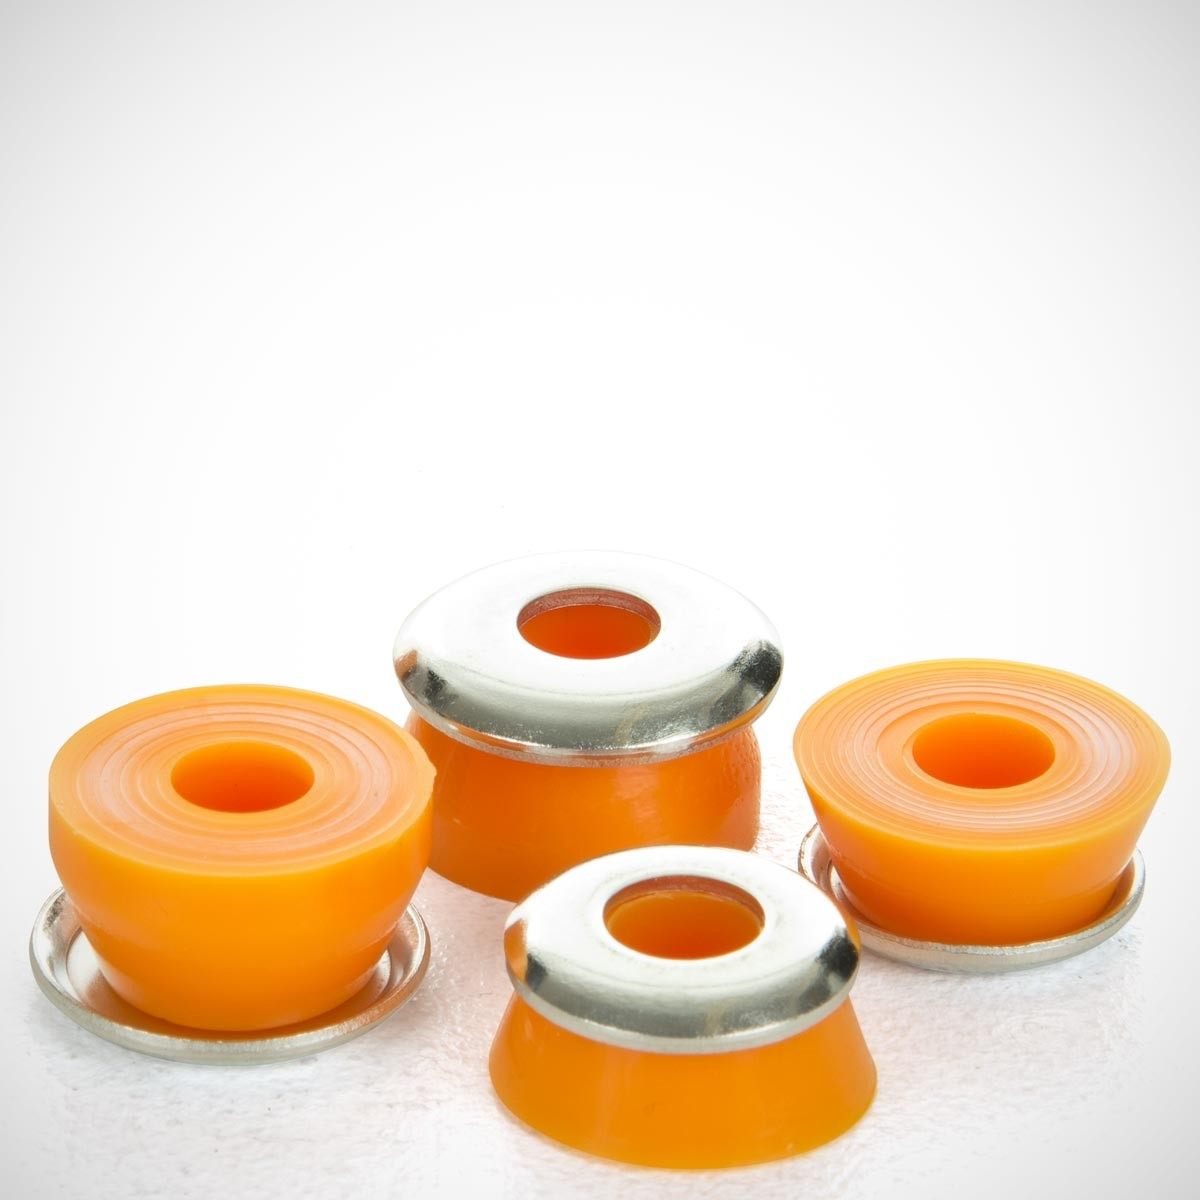 independent-bushings-standard-conical-medium-90a-2x-set-orange-s377206-01.1017